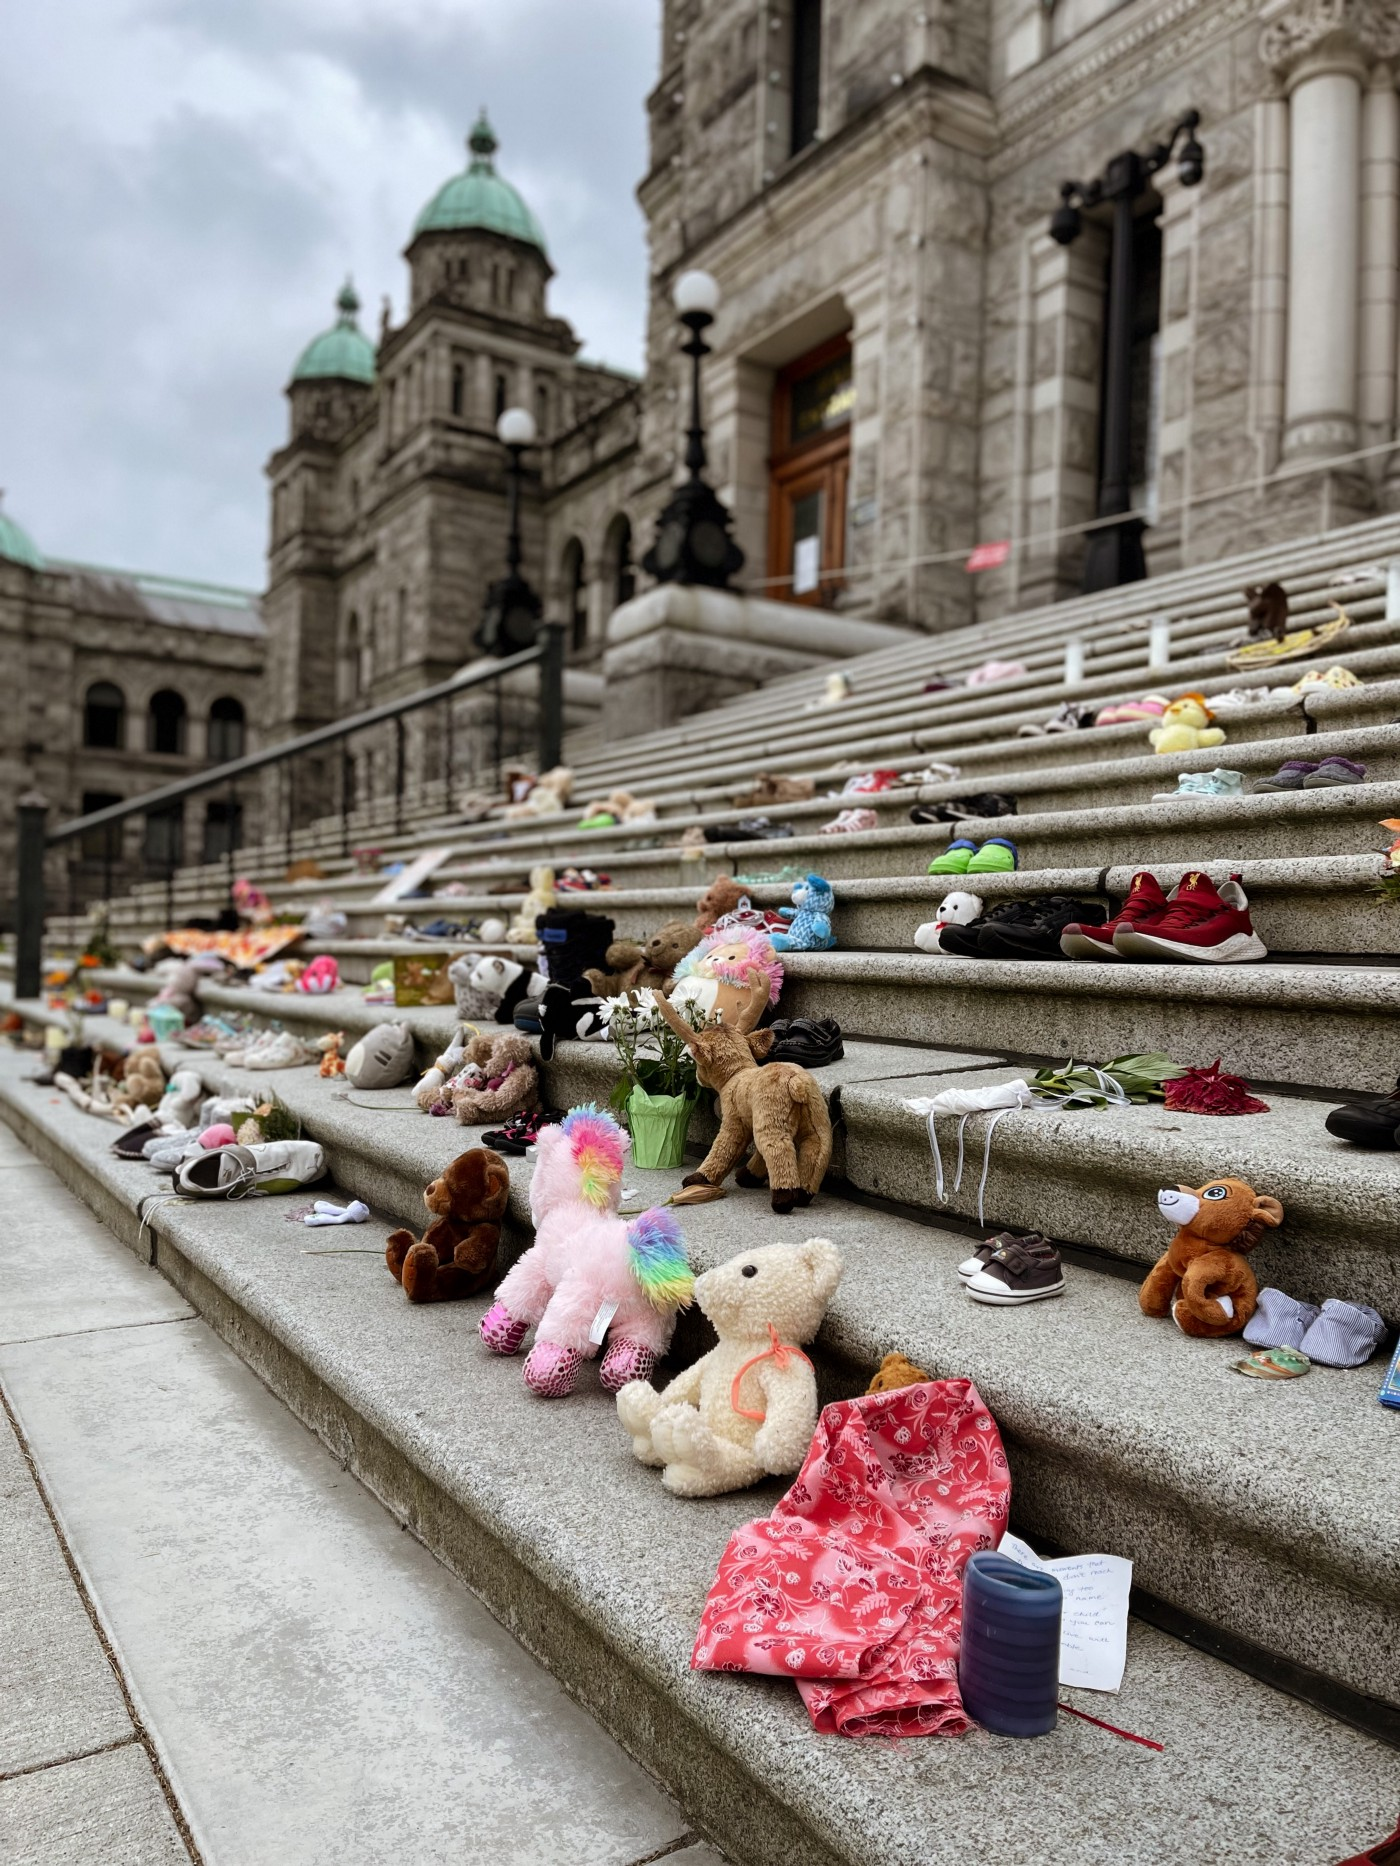 Children's shoes and stuffed toys line the stairs of a church.